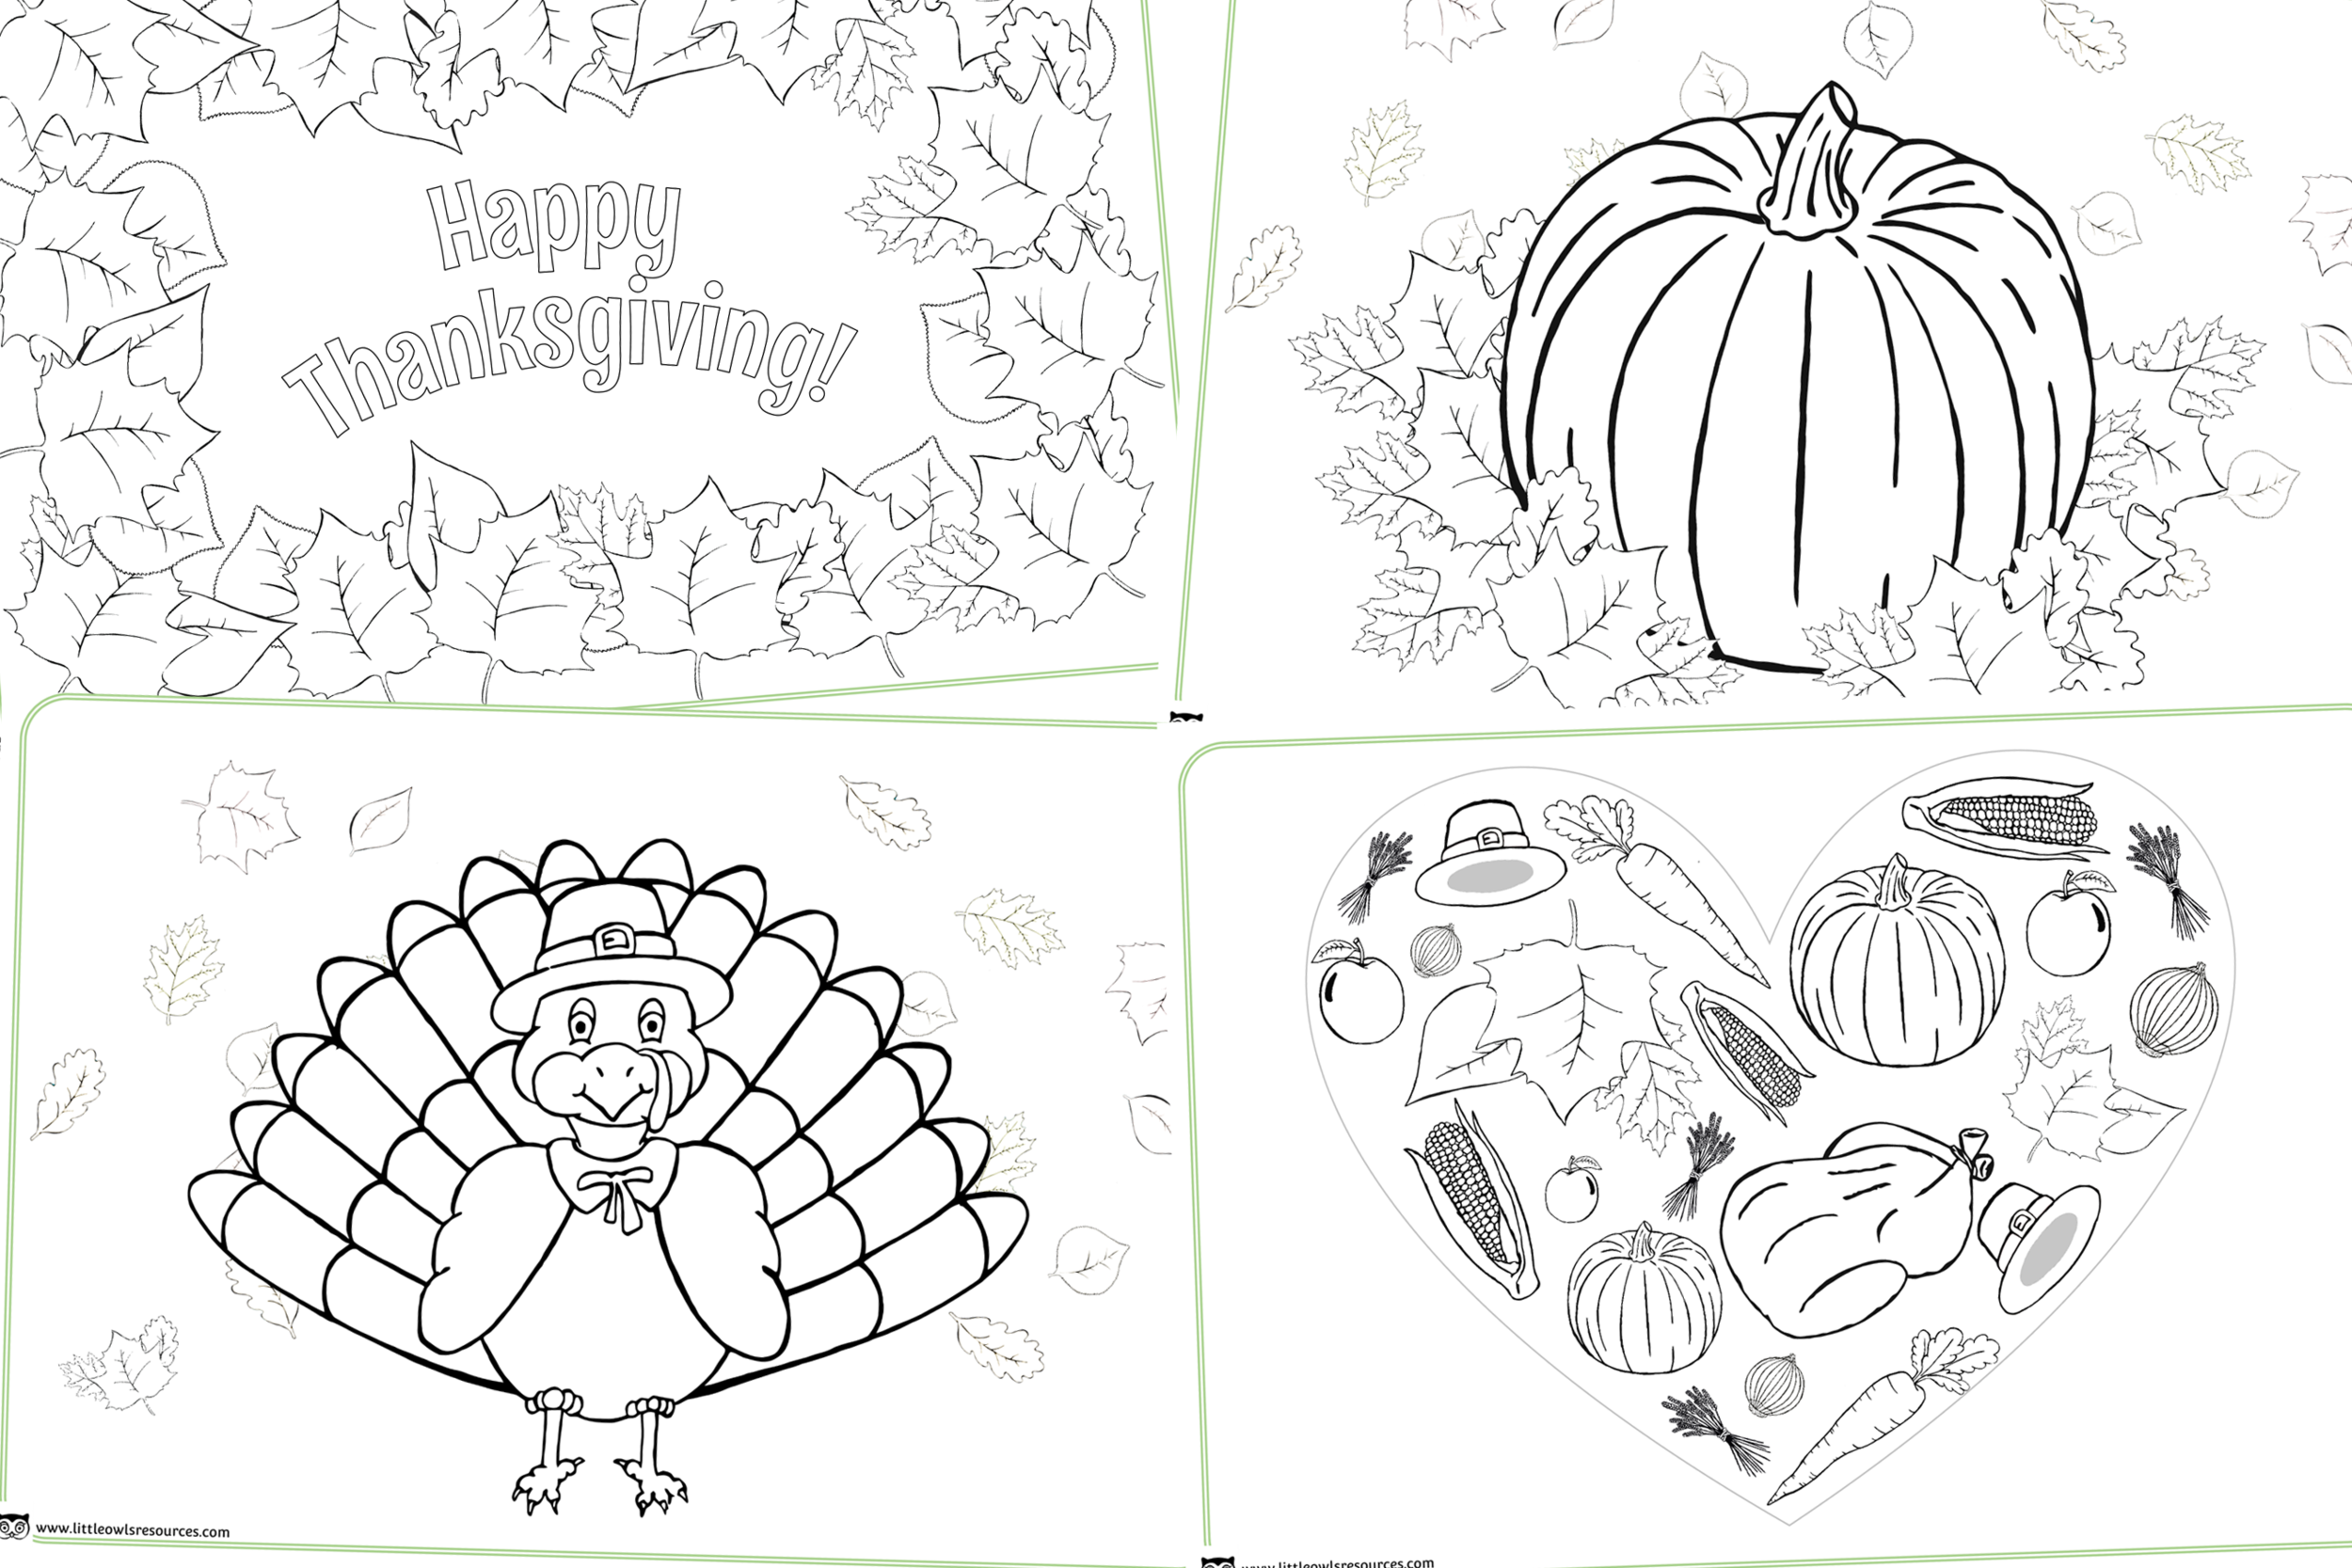 'Thanksgiving' themed Colouring Sheets